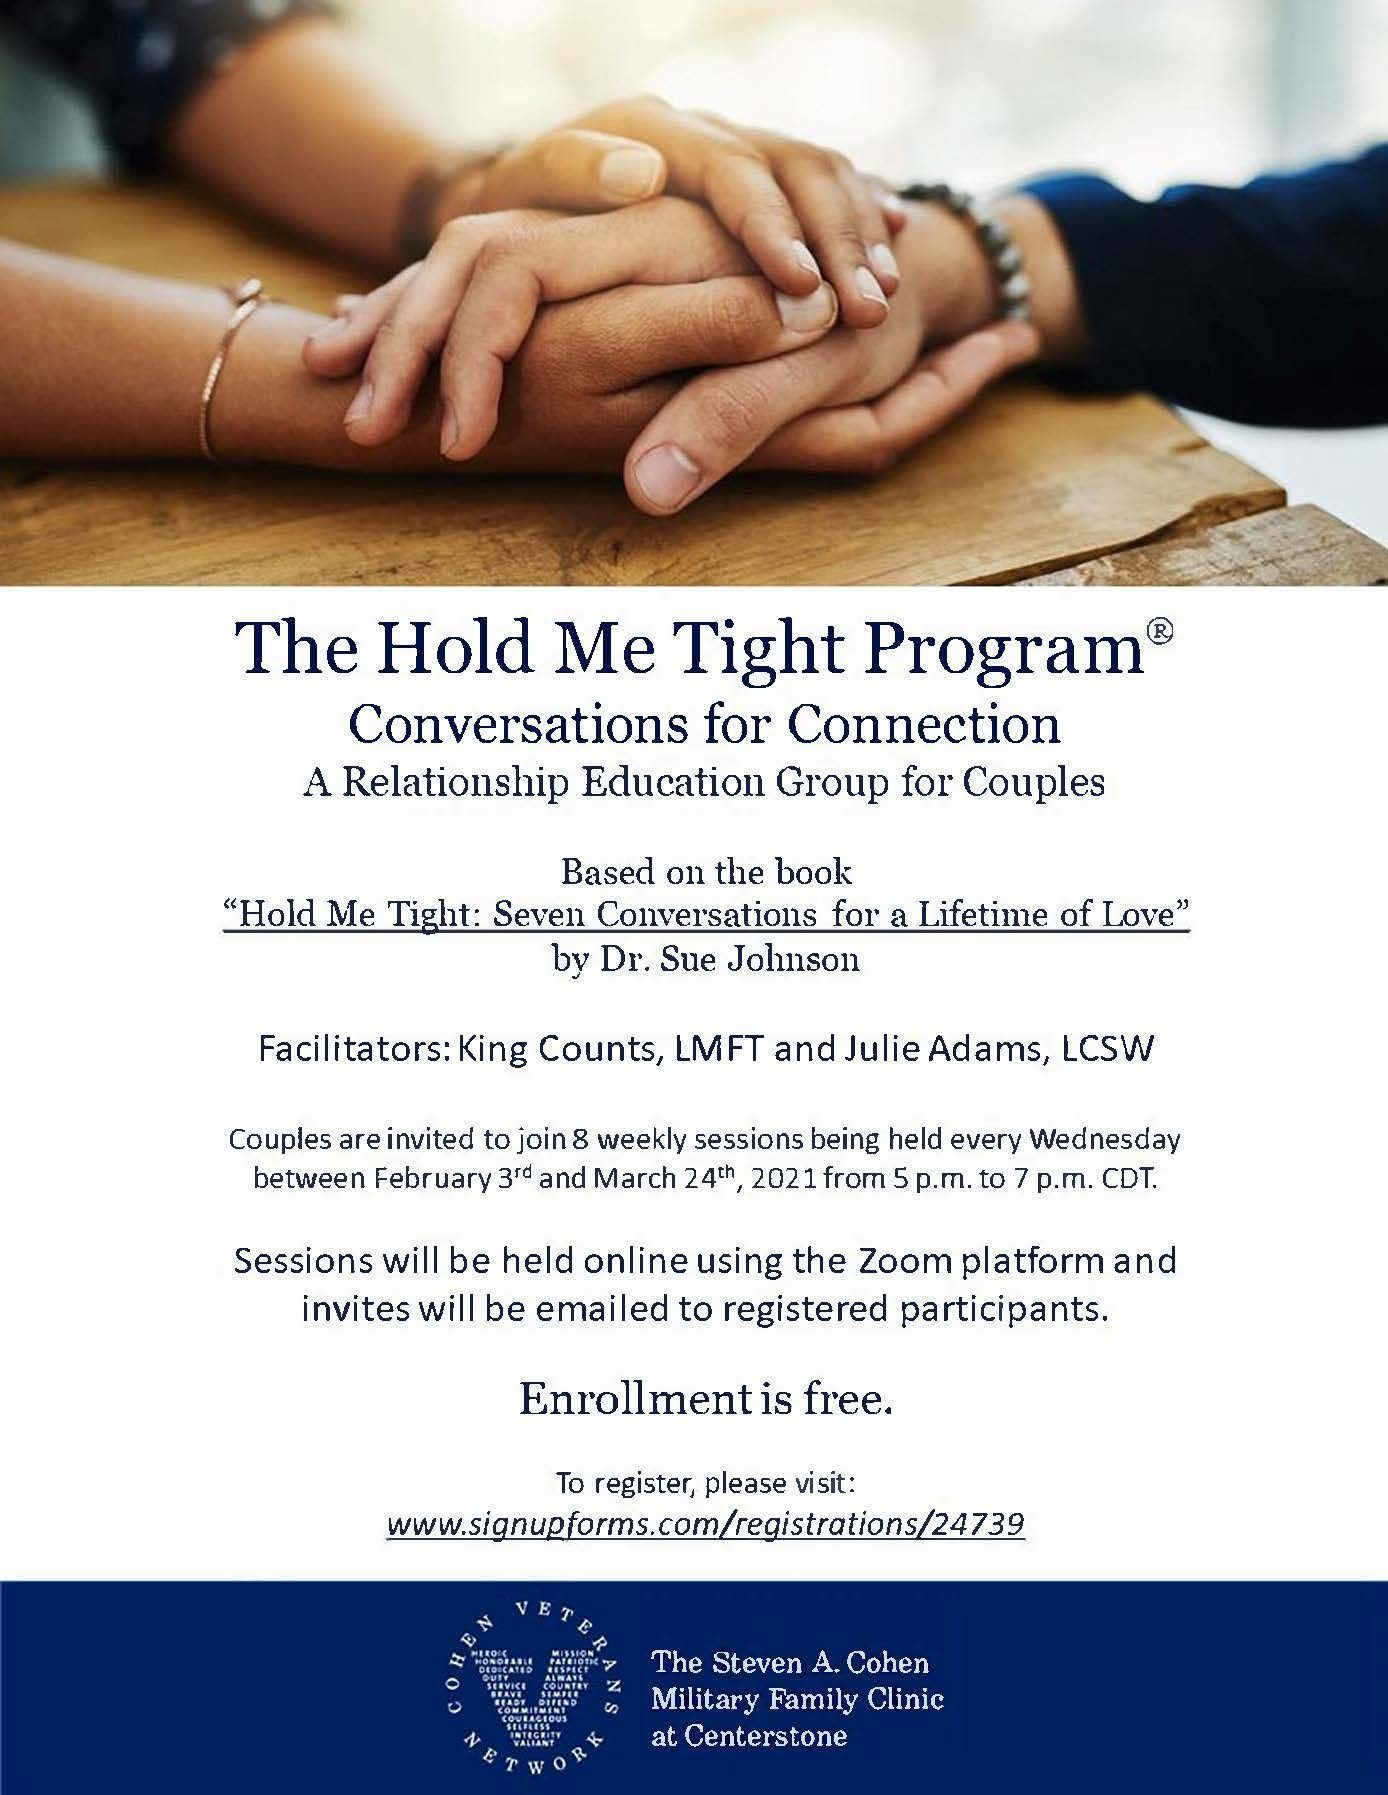 The Hold Me Tight Program